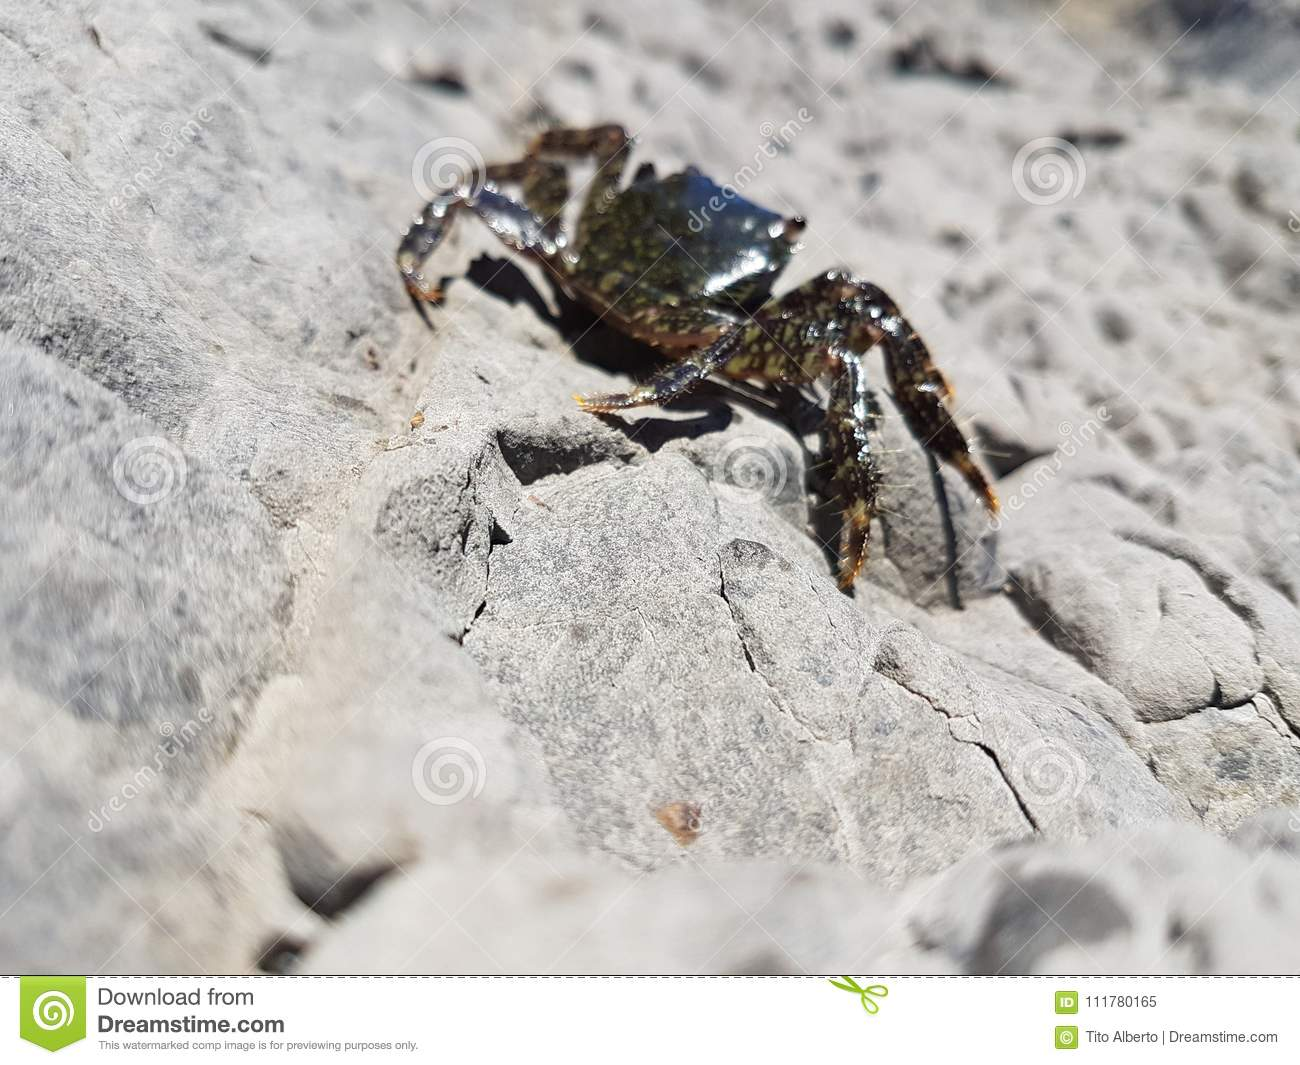 Crab on rock